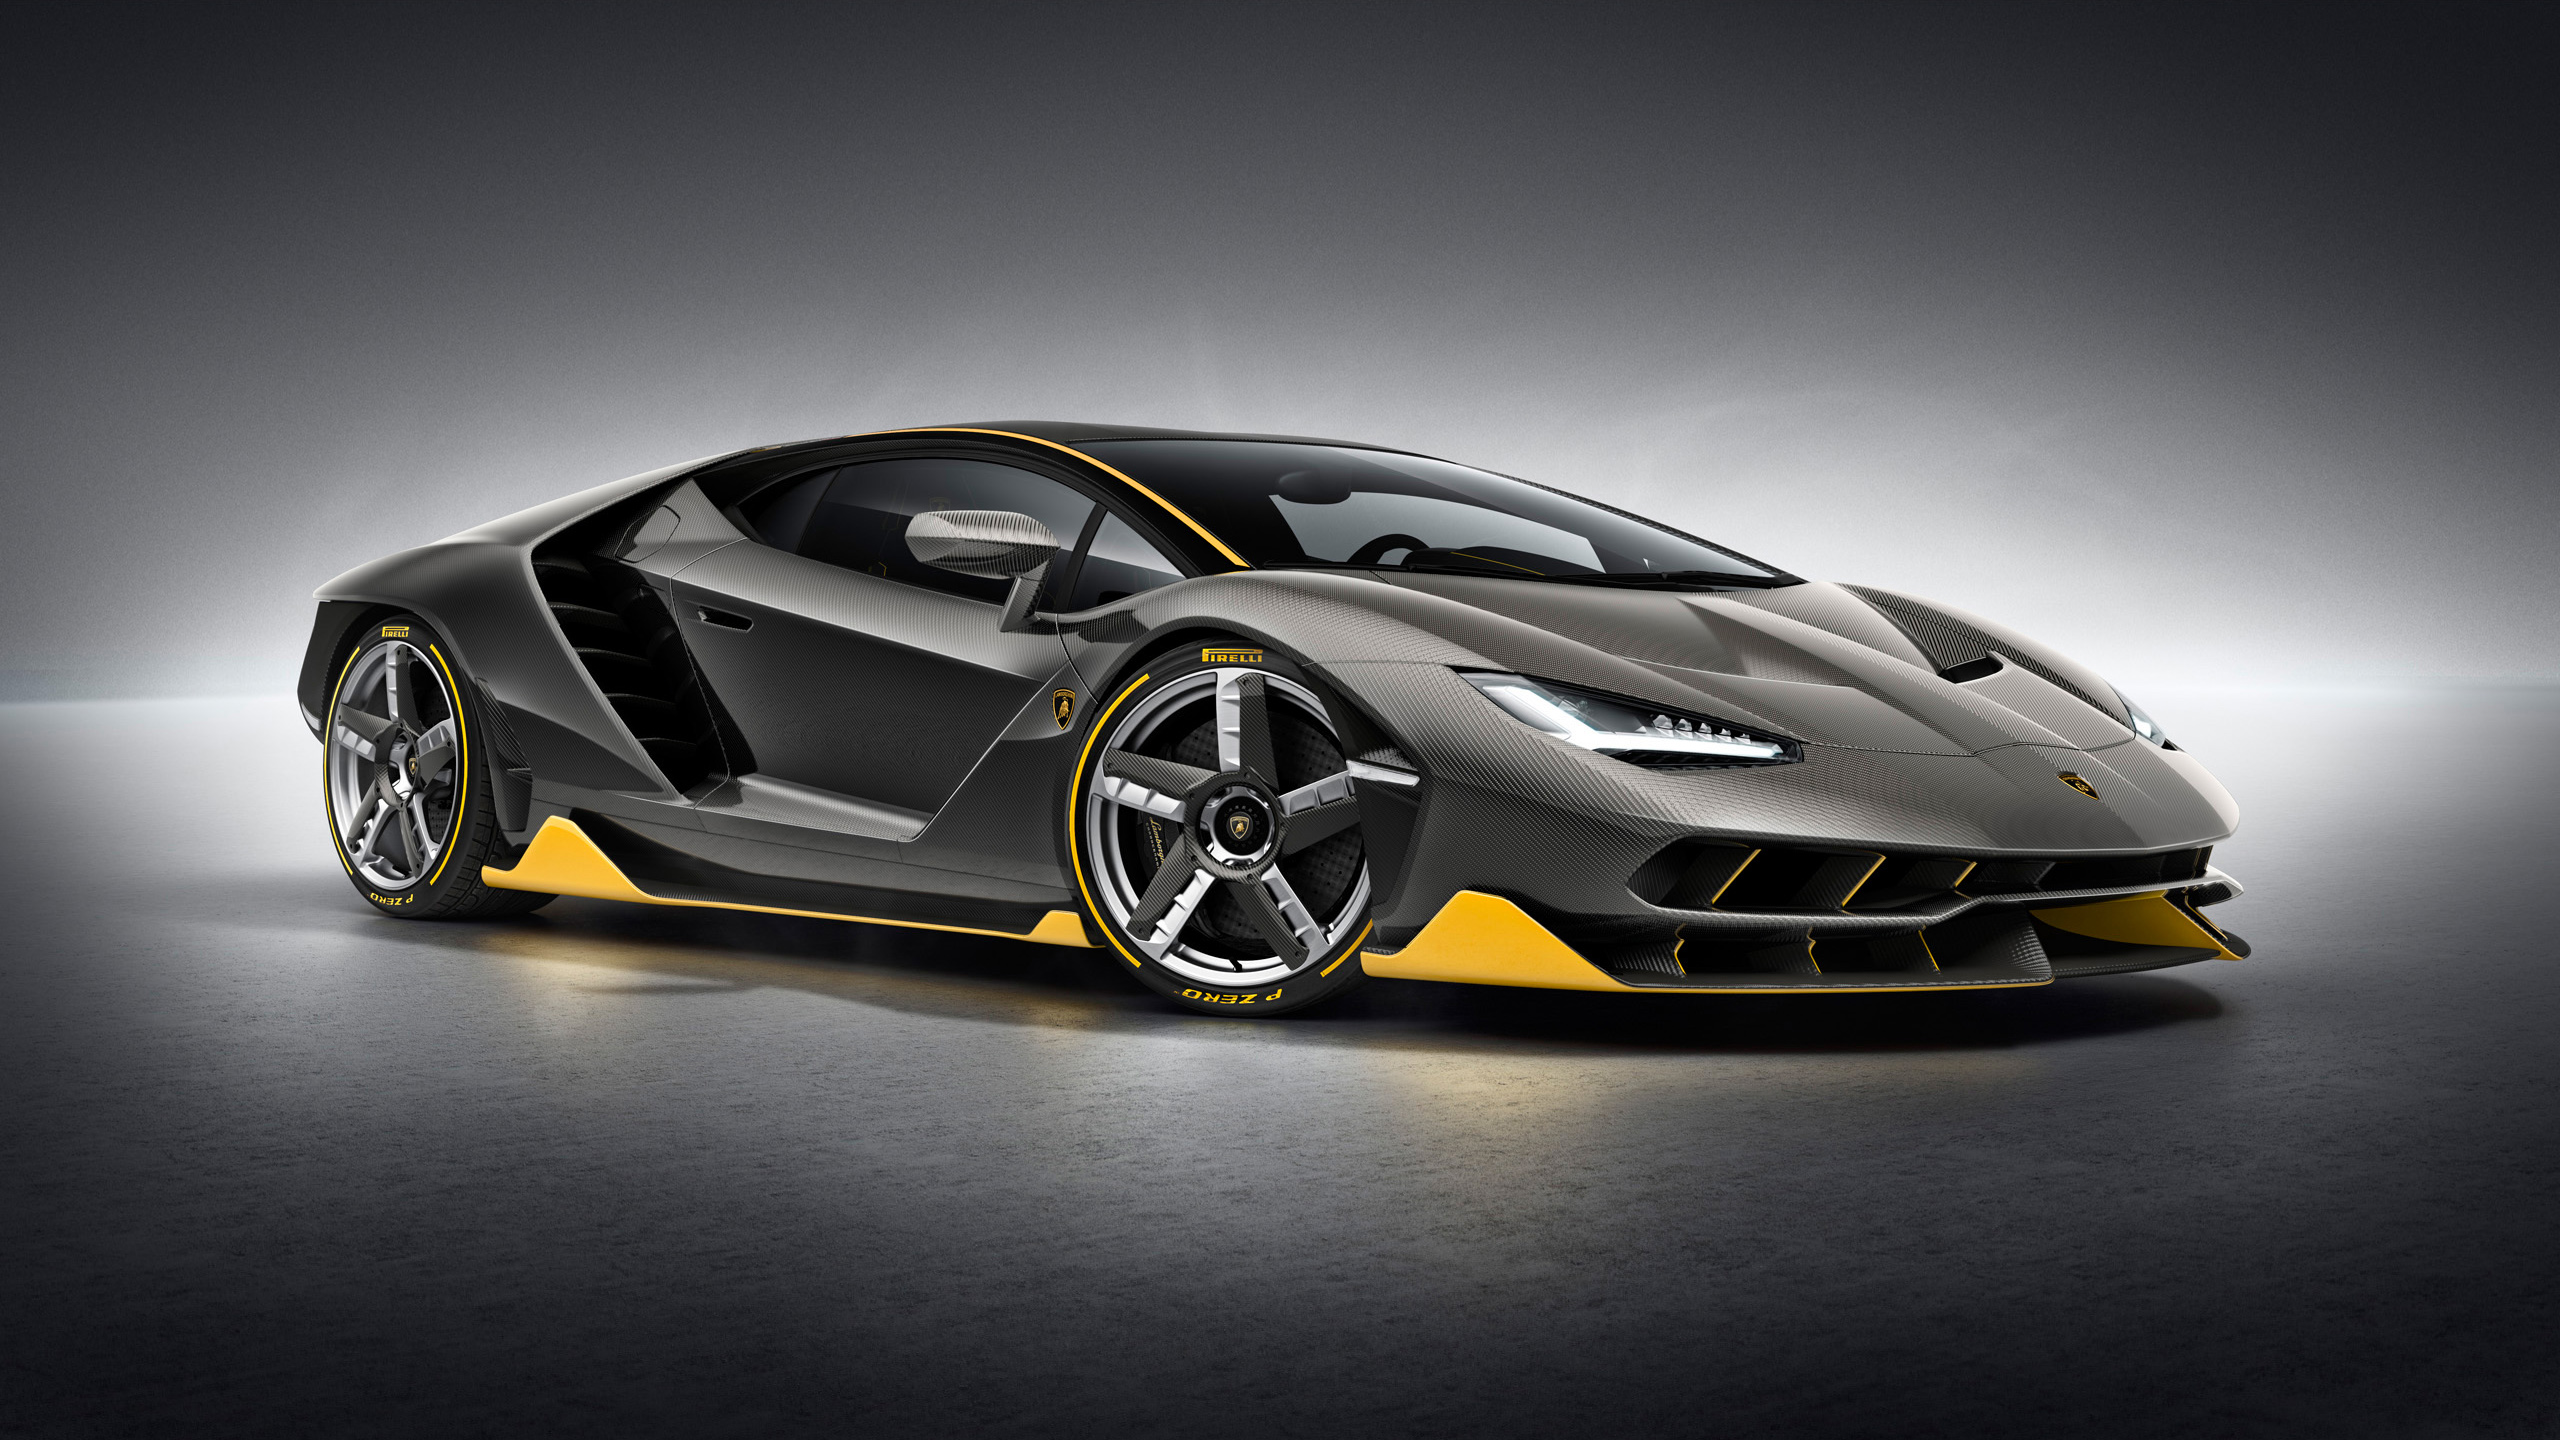 2016 Lamborghini Centenario Wallpaper Hd Car Wallpapers Id 6267